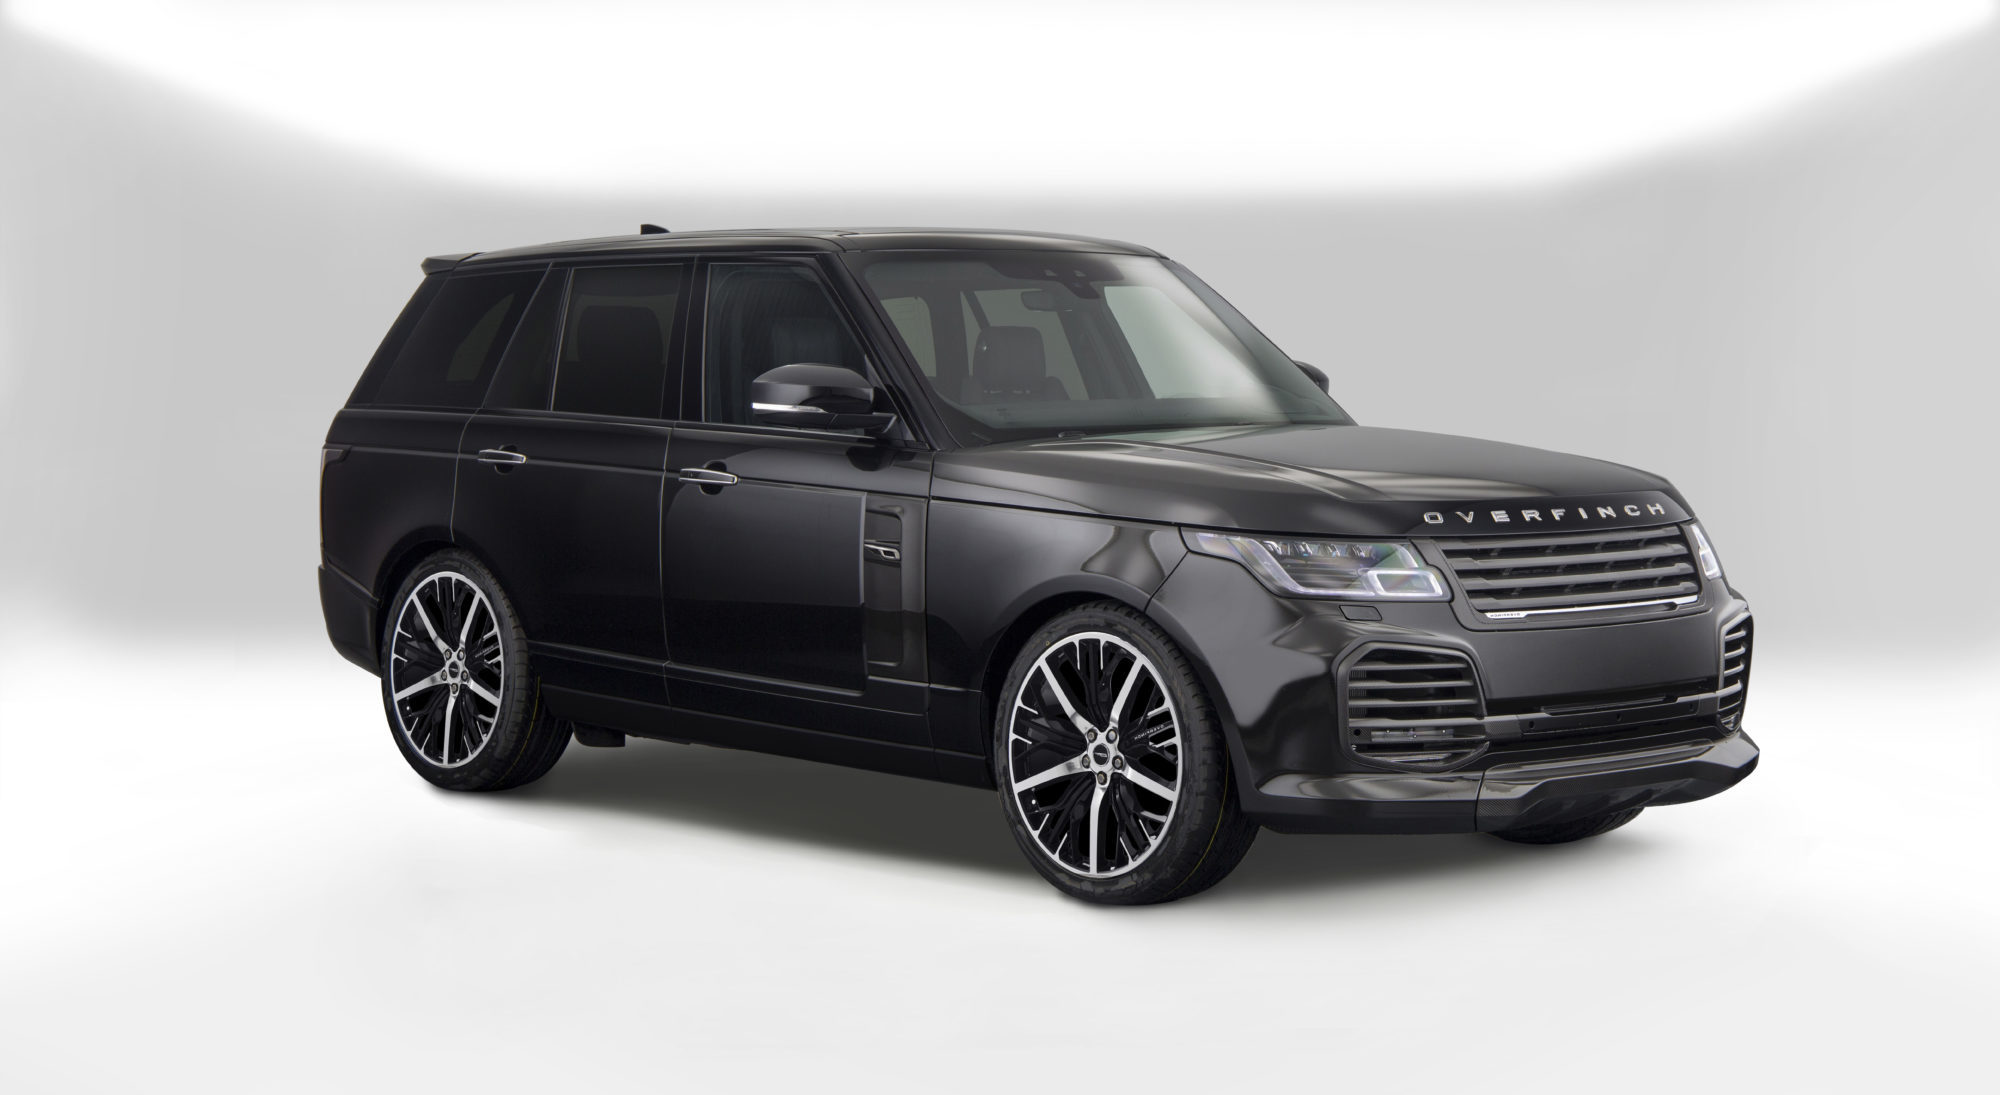 Range Rover Redefined By Overfinch The Art Of Bespoke